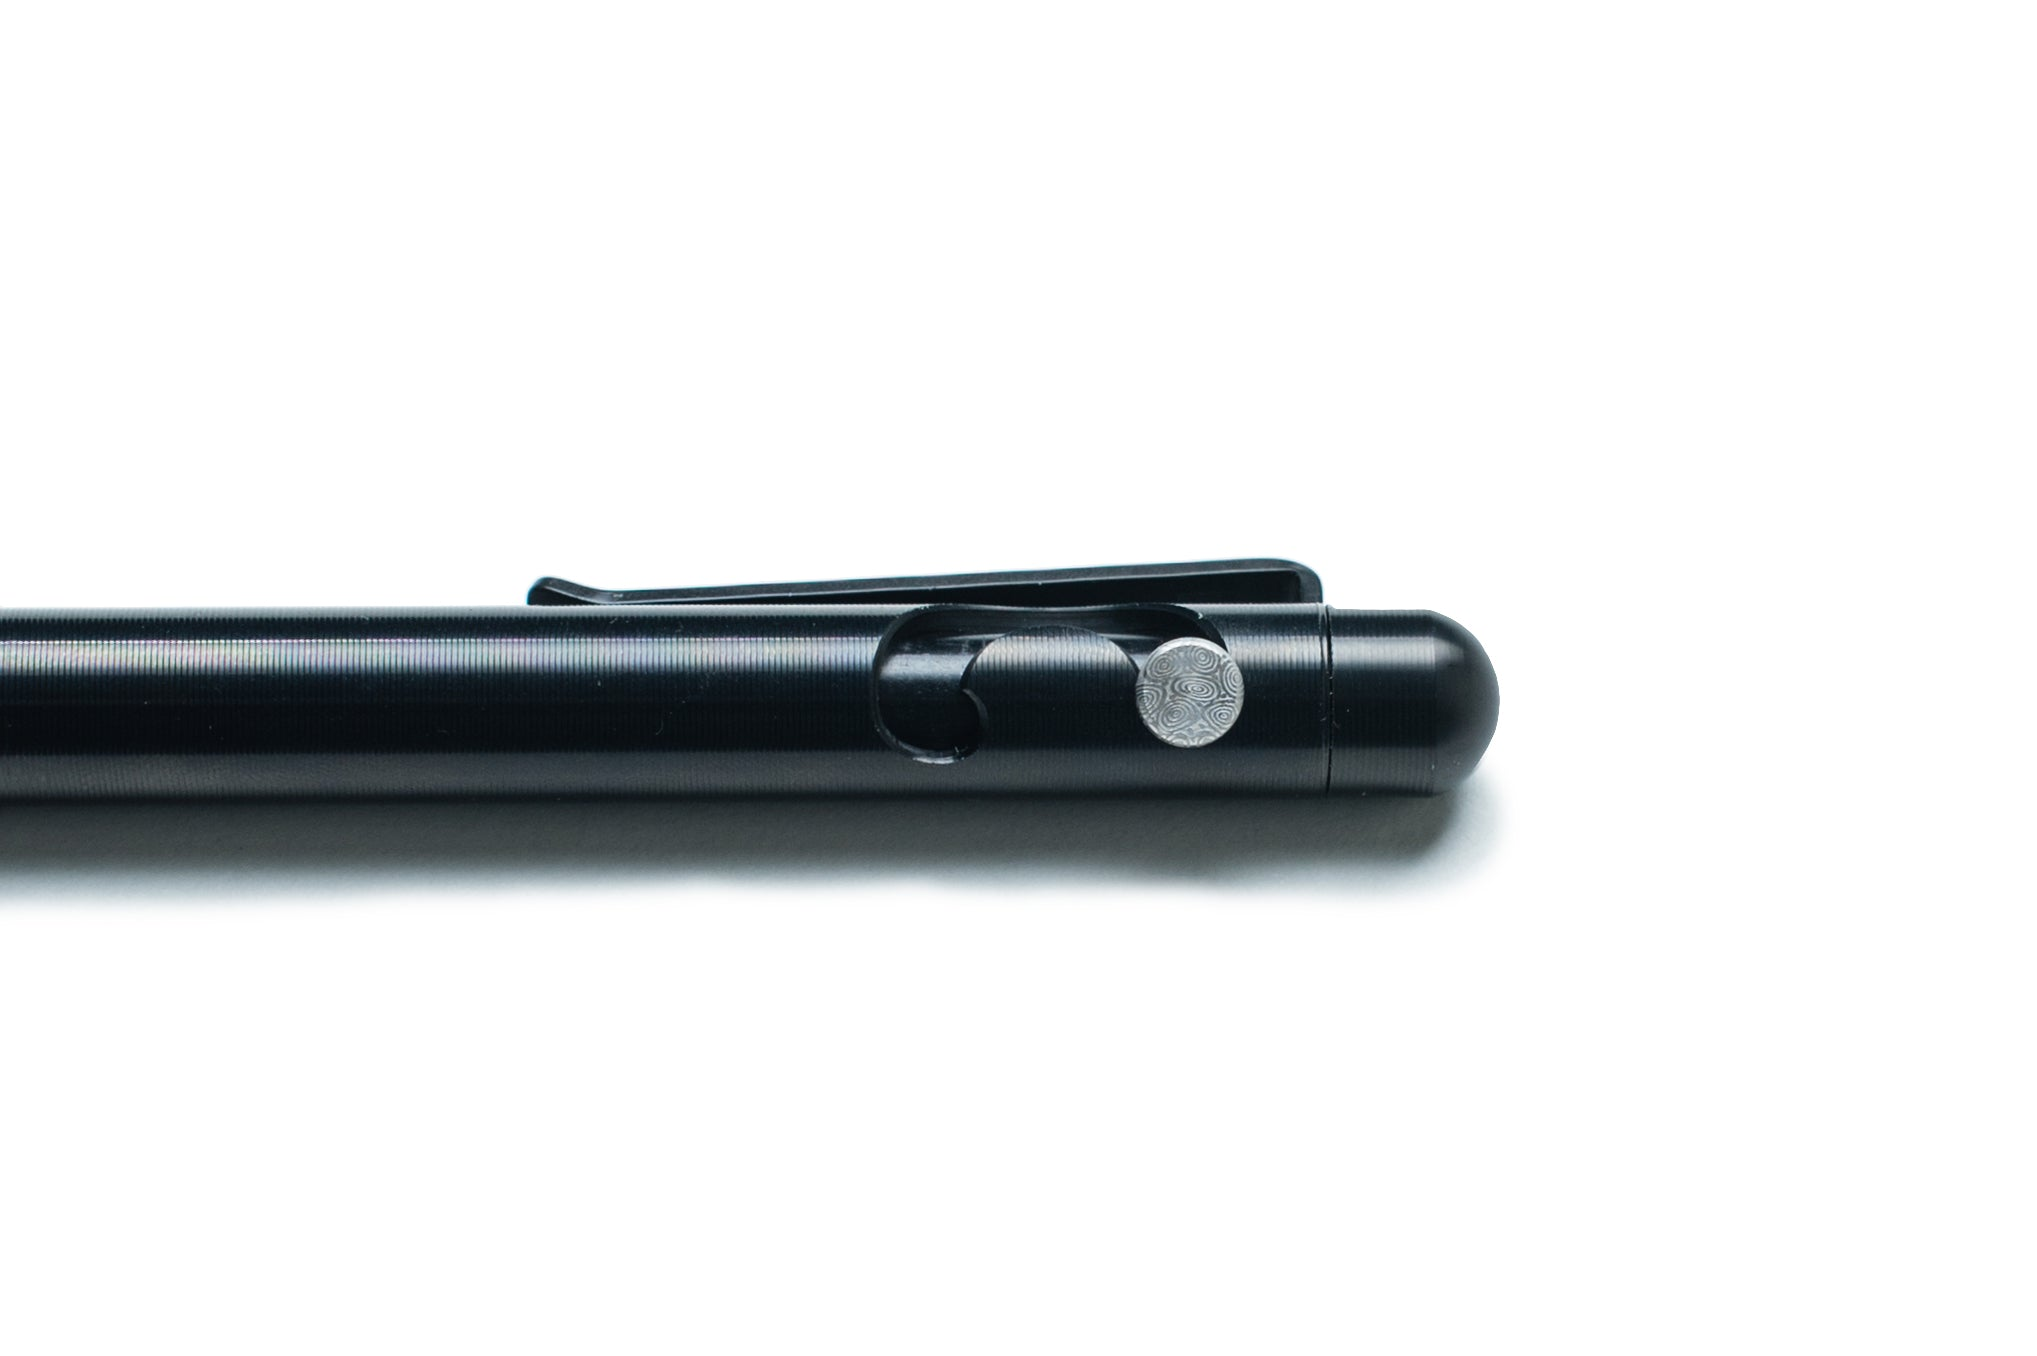 DLC Coated Titanium Slider Pen